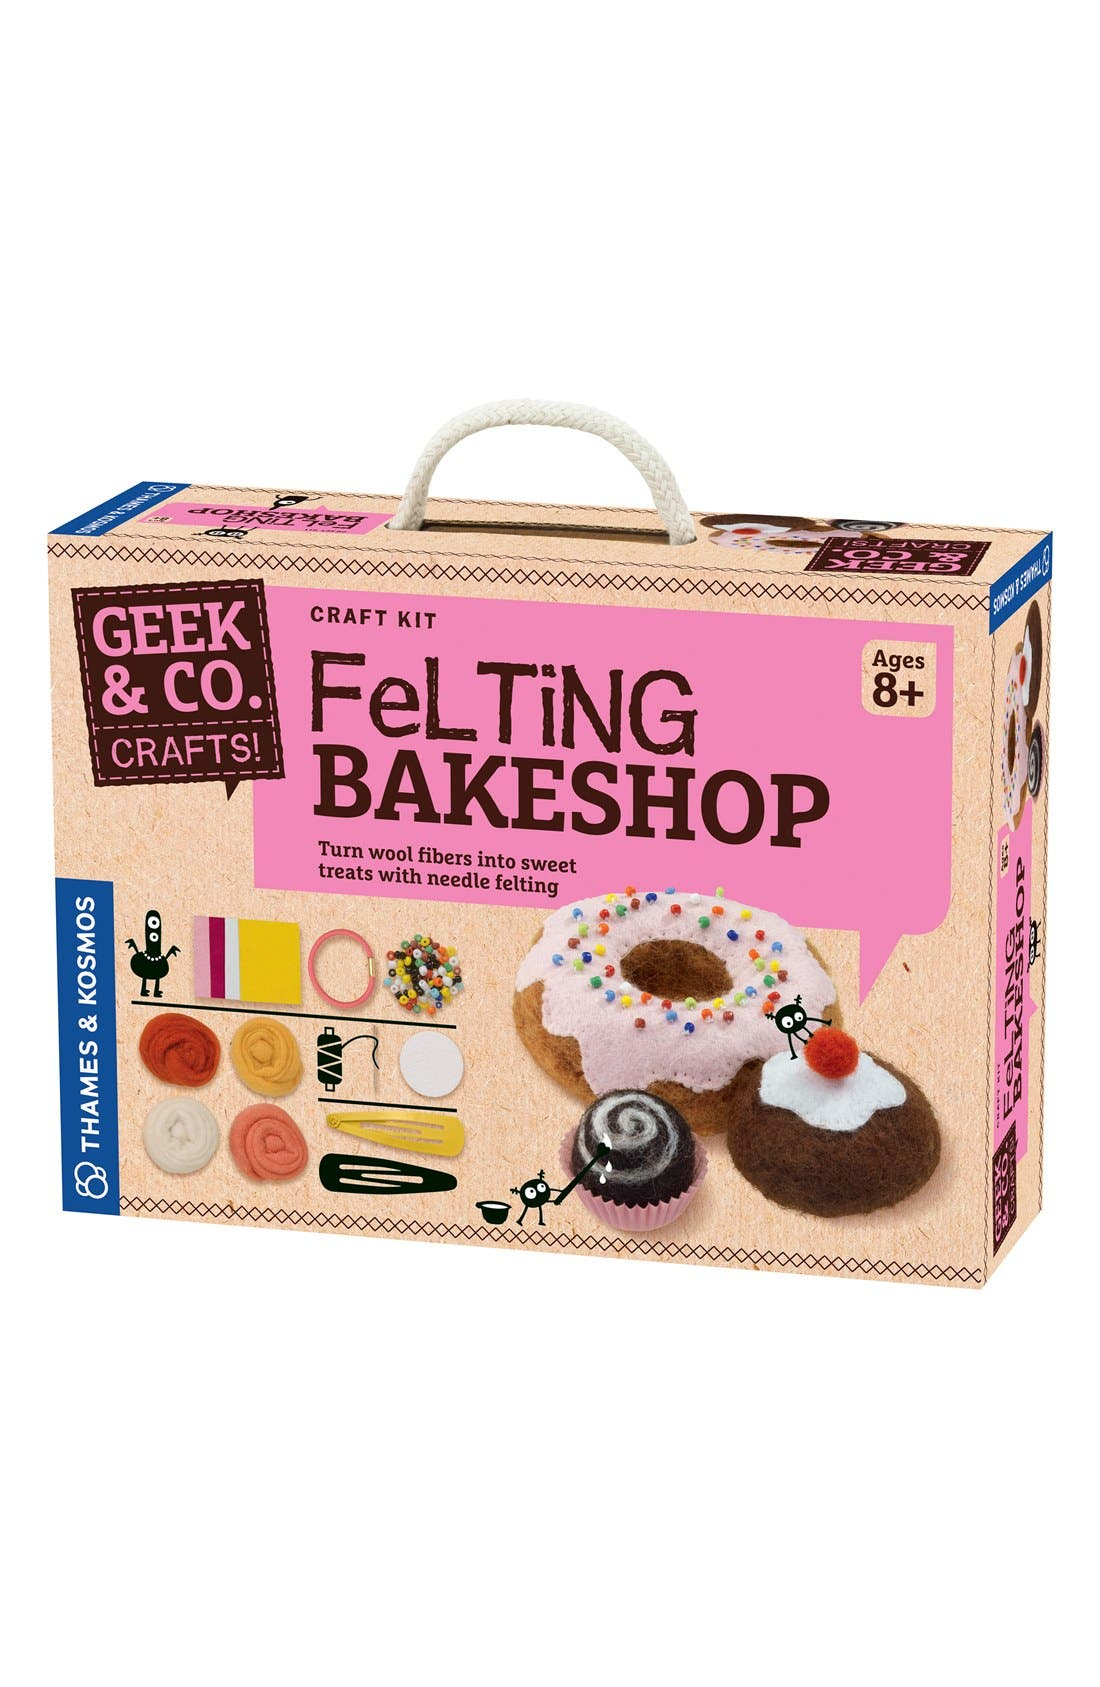 Thames & Kosmos 'Felting Bakeshop' Craft Kit